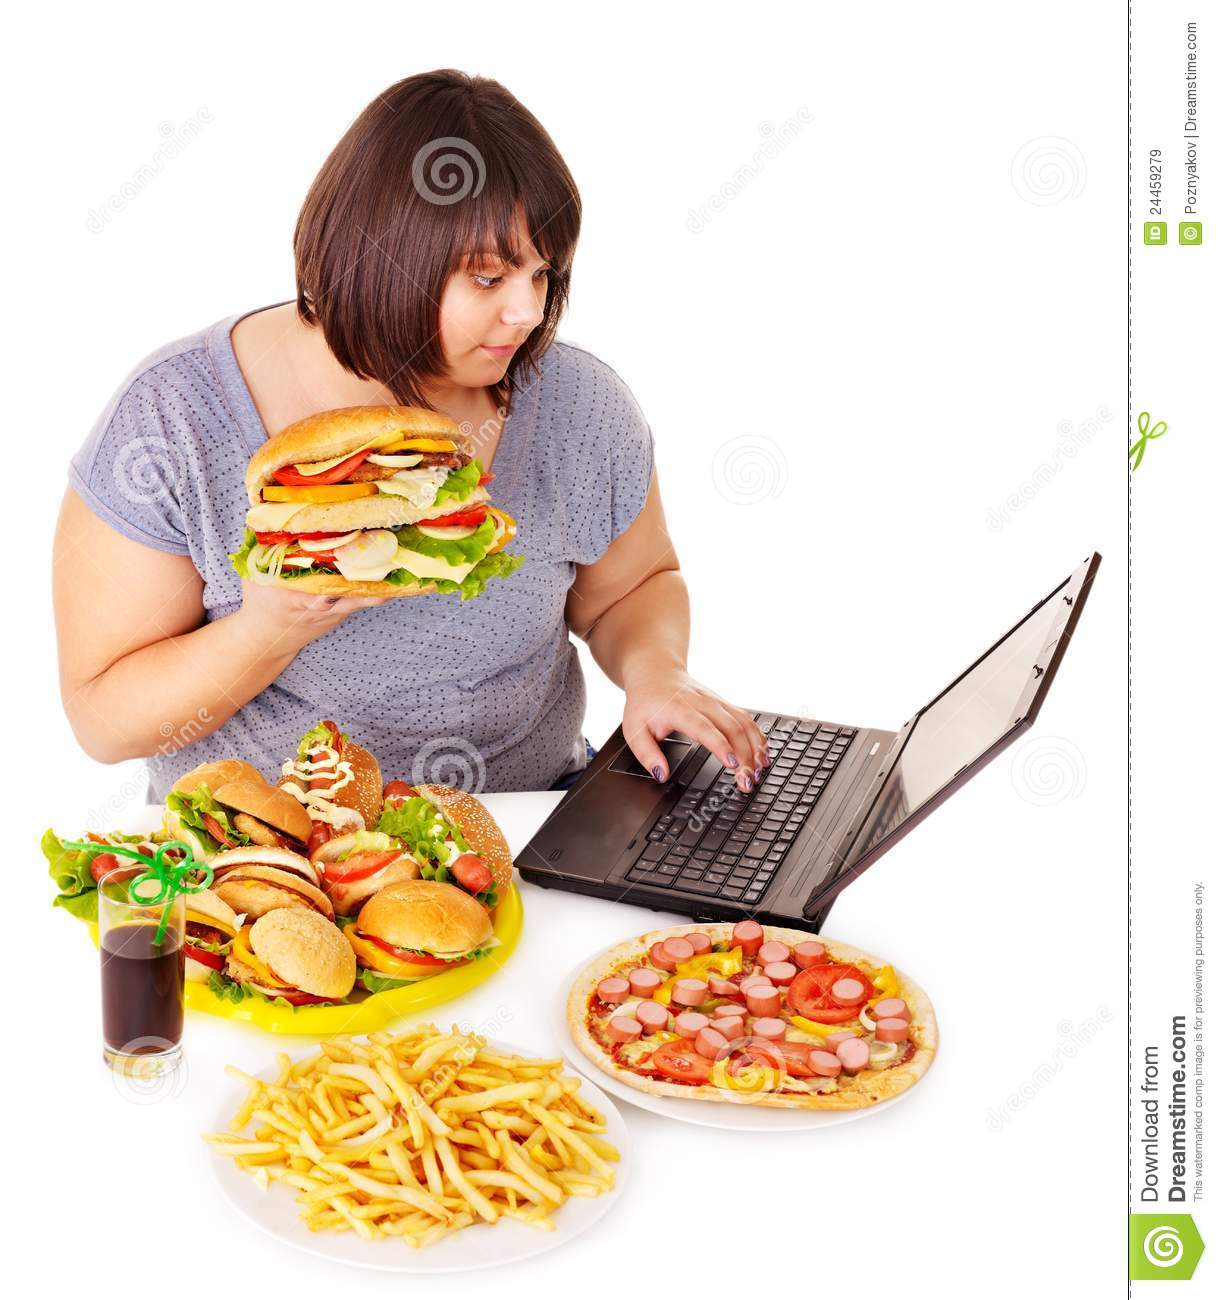 Woman Eating Junk Food  Stock Image  Image Of Meal